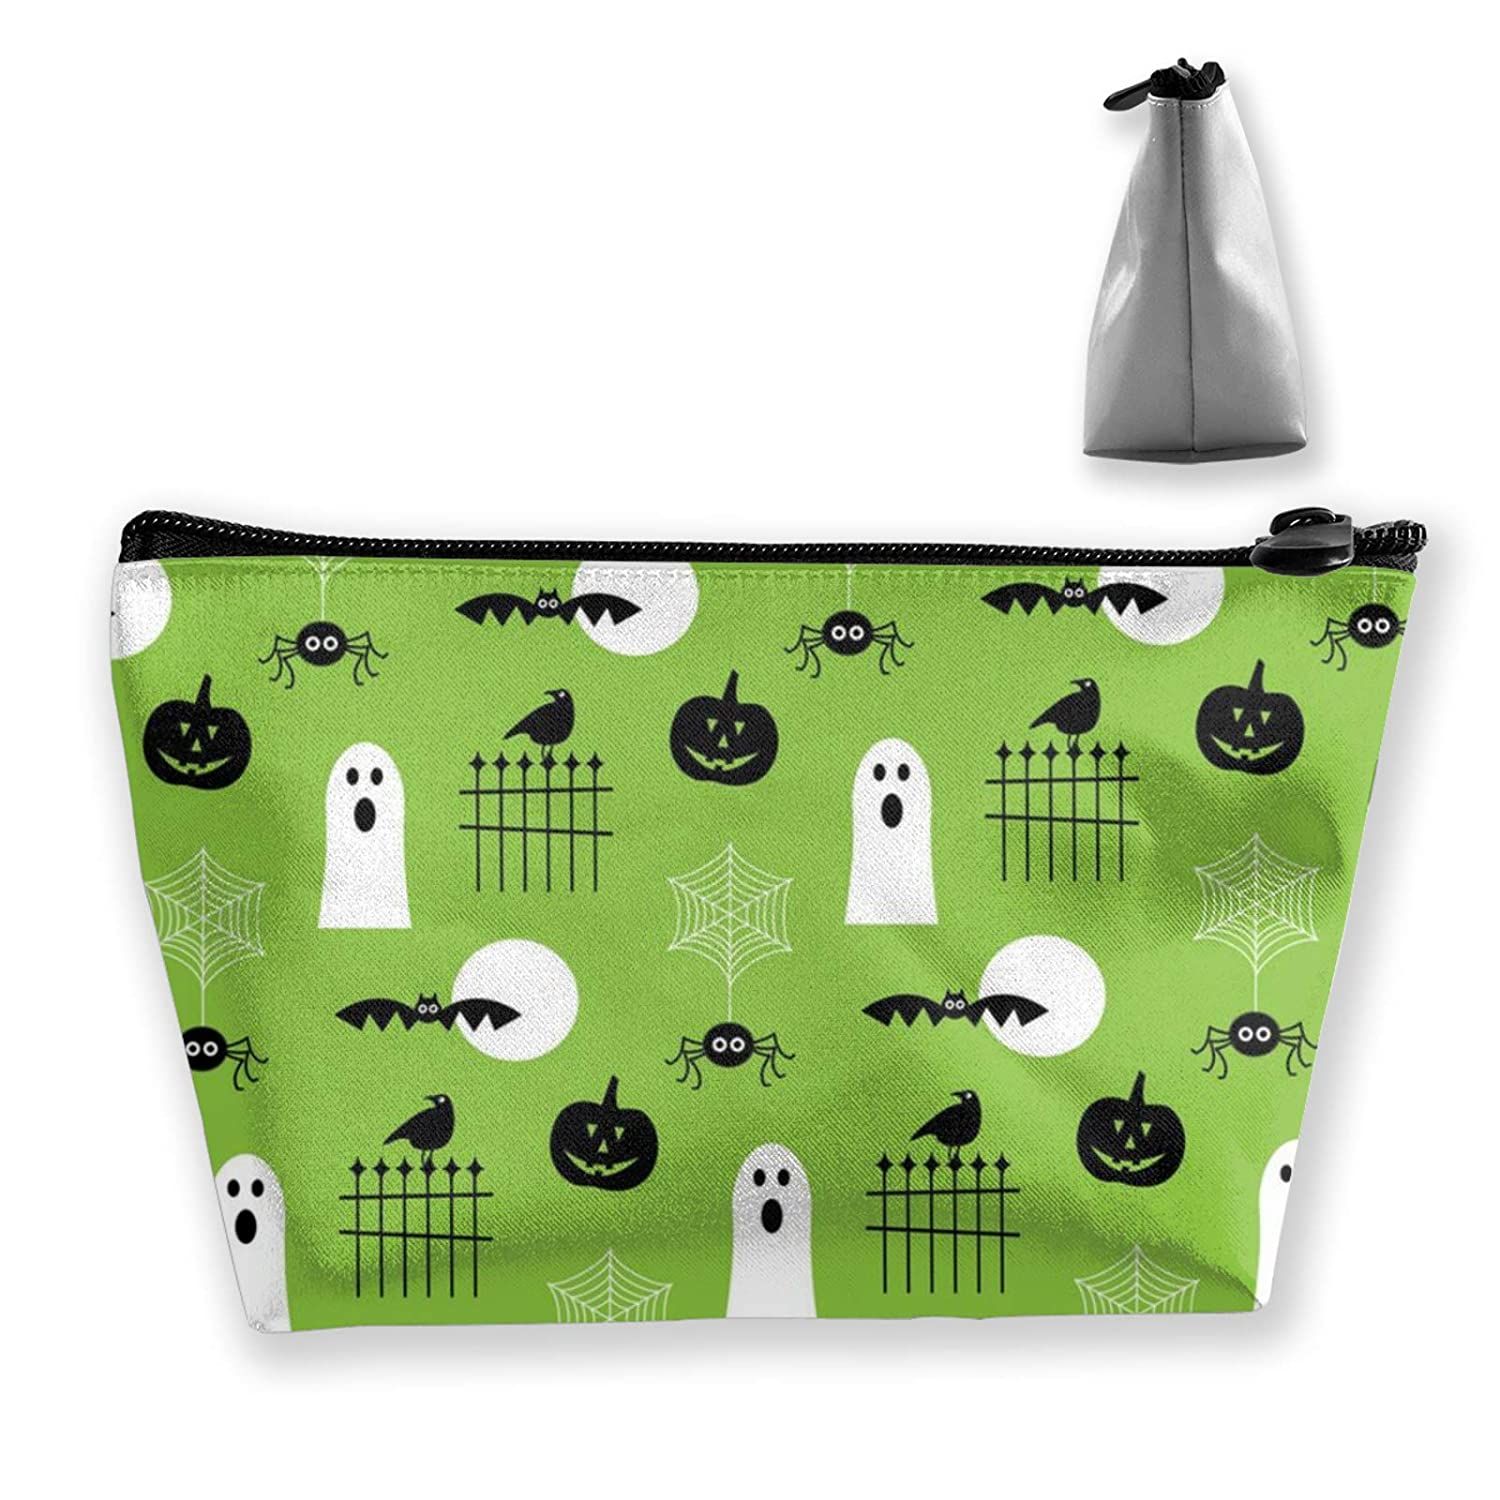 Women Girls Halloween Ghosts Green Make Up Bag Pouch For Makeup Brushes Jewelry Travel Large Capacity Travel Makeup Train Case Multi-Purpose Clutch Bag Luggage Pouch